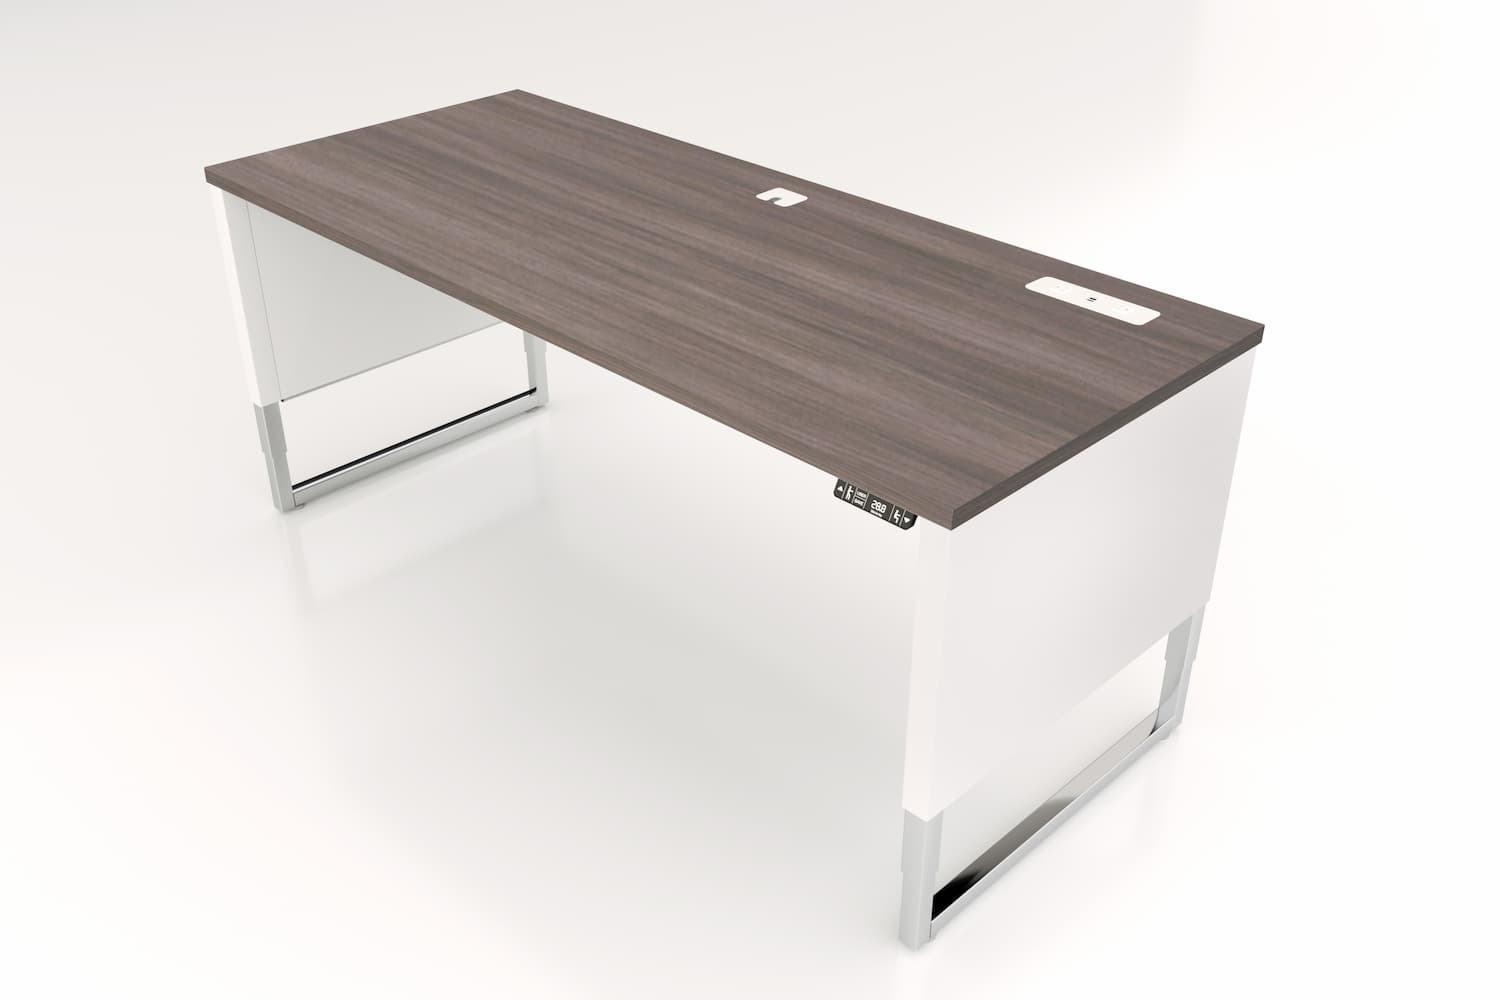 Advent-Desk-ADV-7230-WH-Custom-Top-12